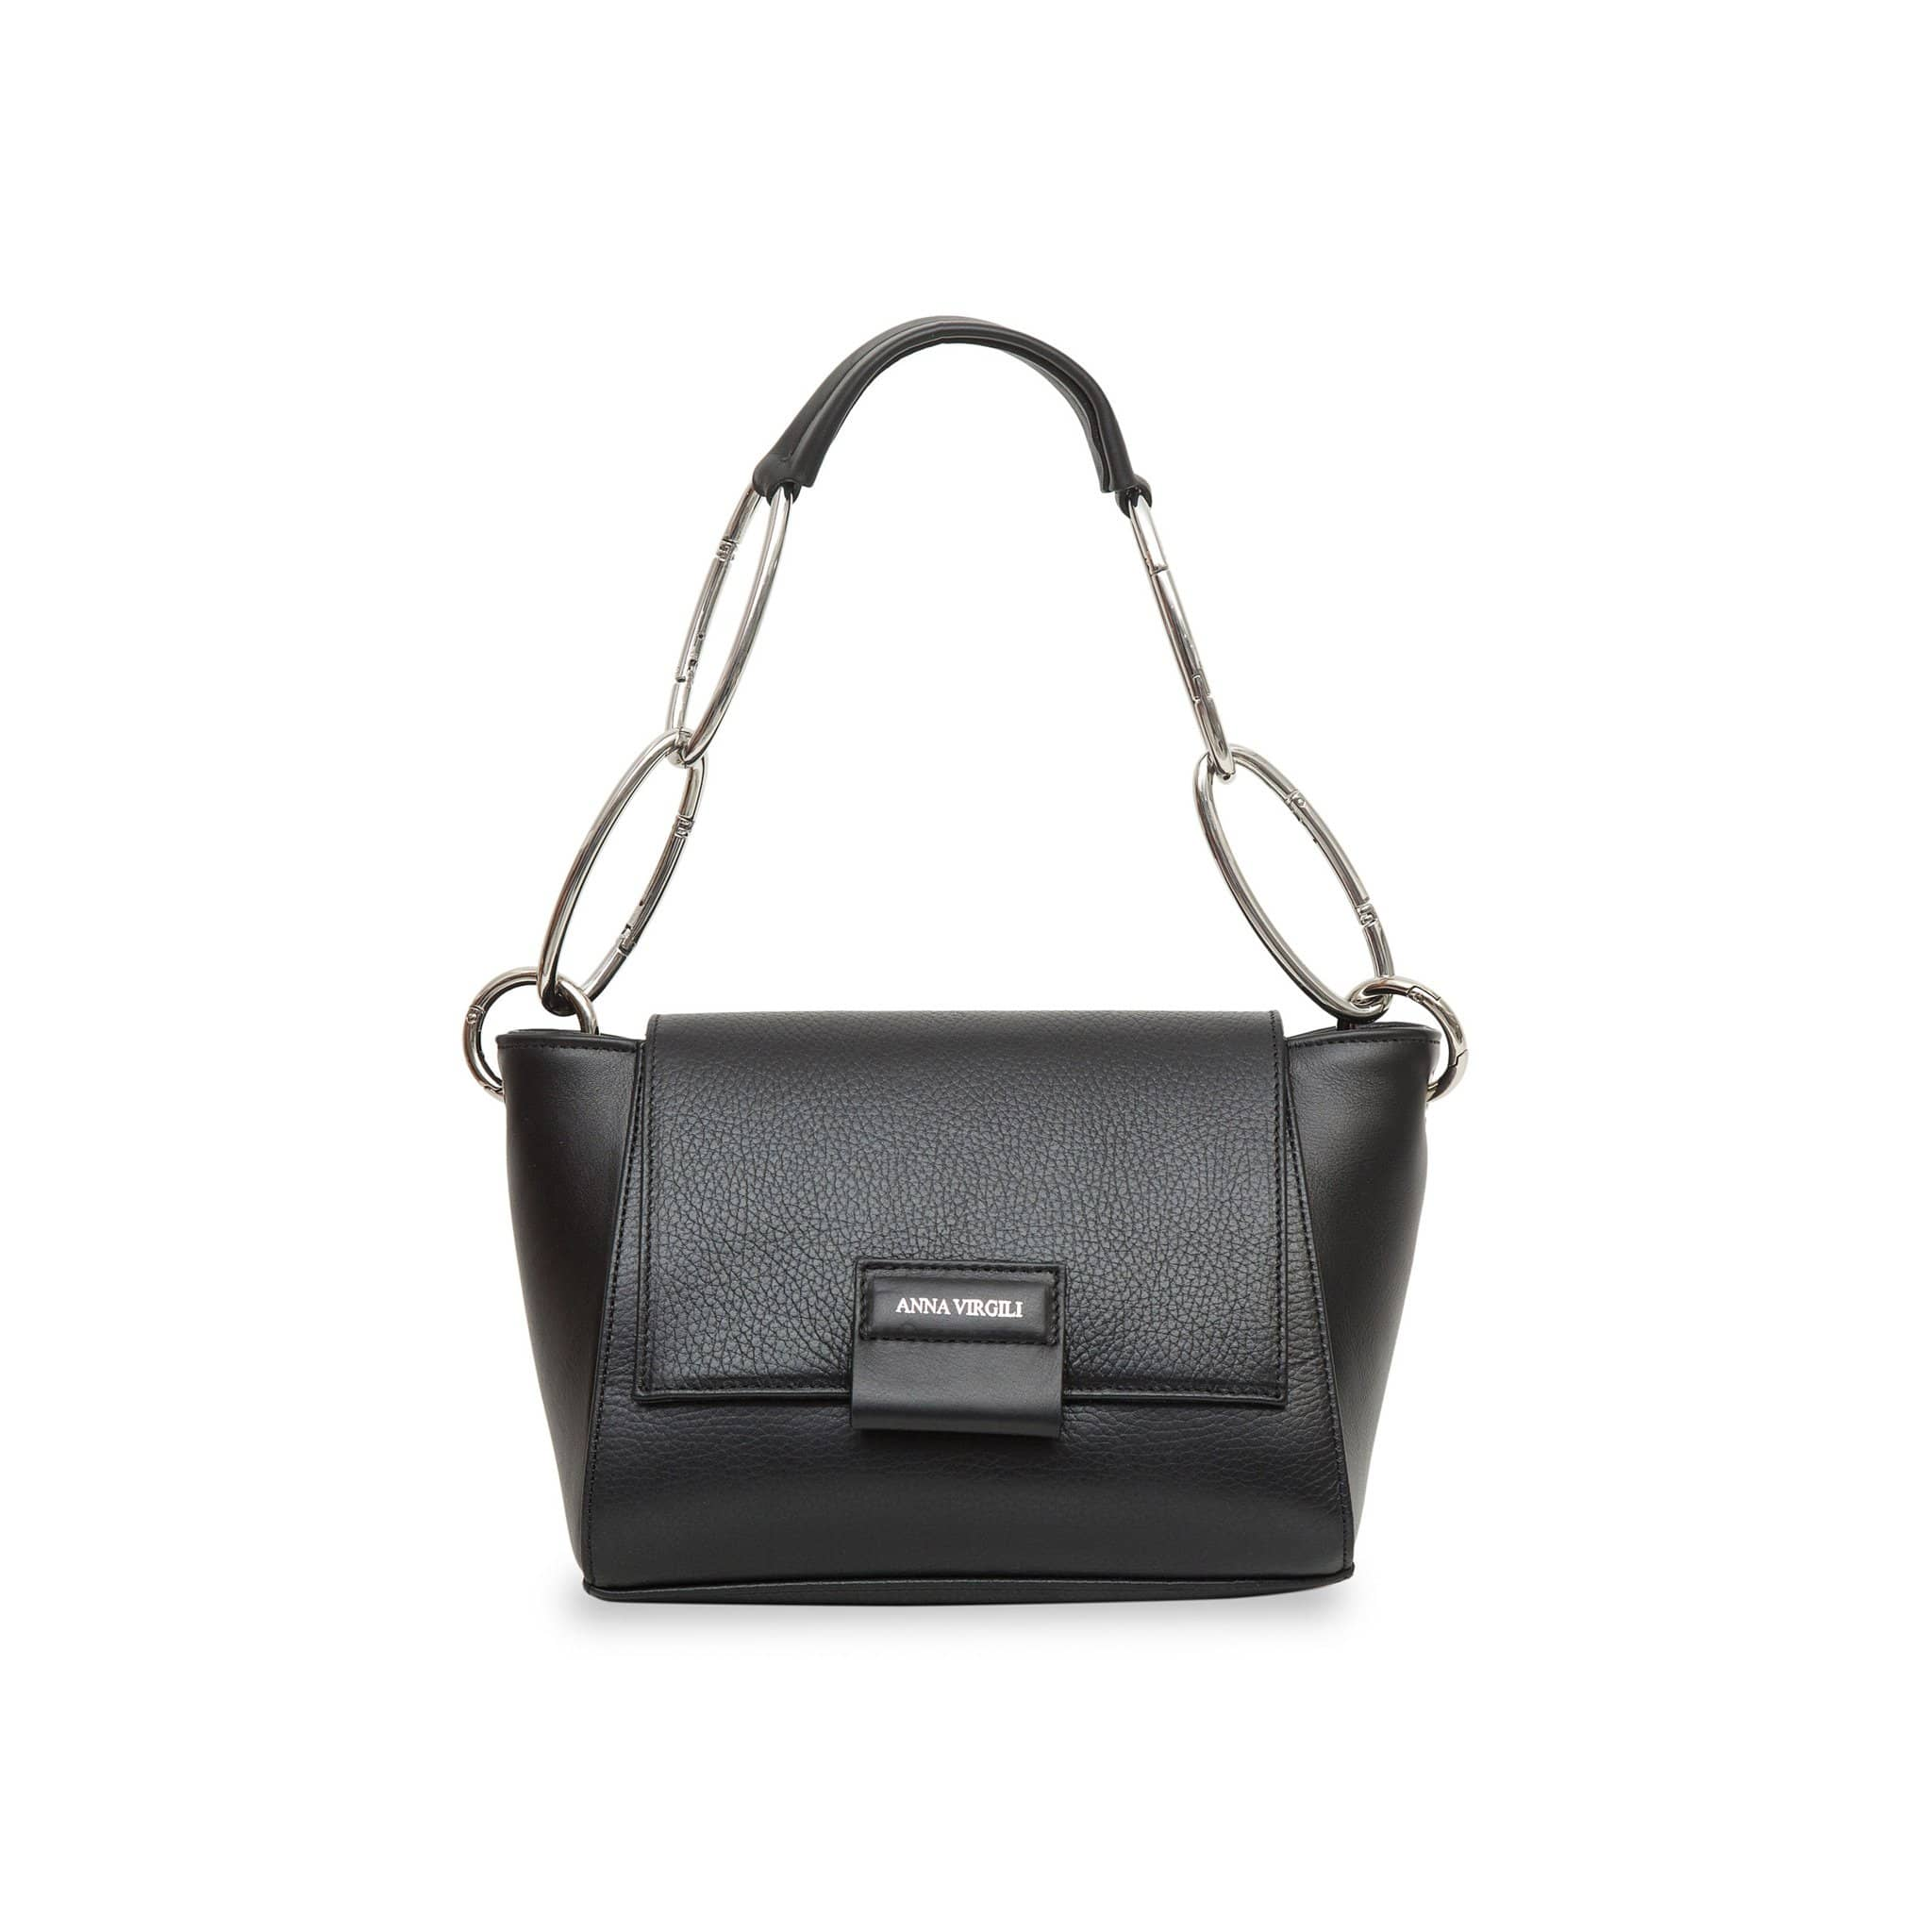 Cabiria Mini Chain Leather Handbag - Black